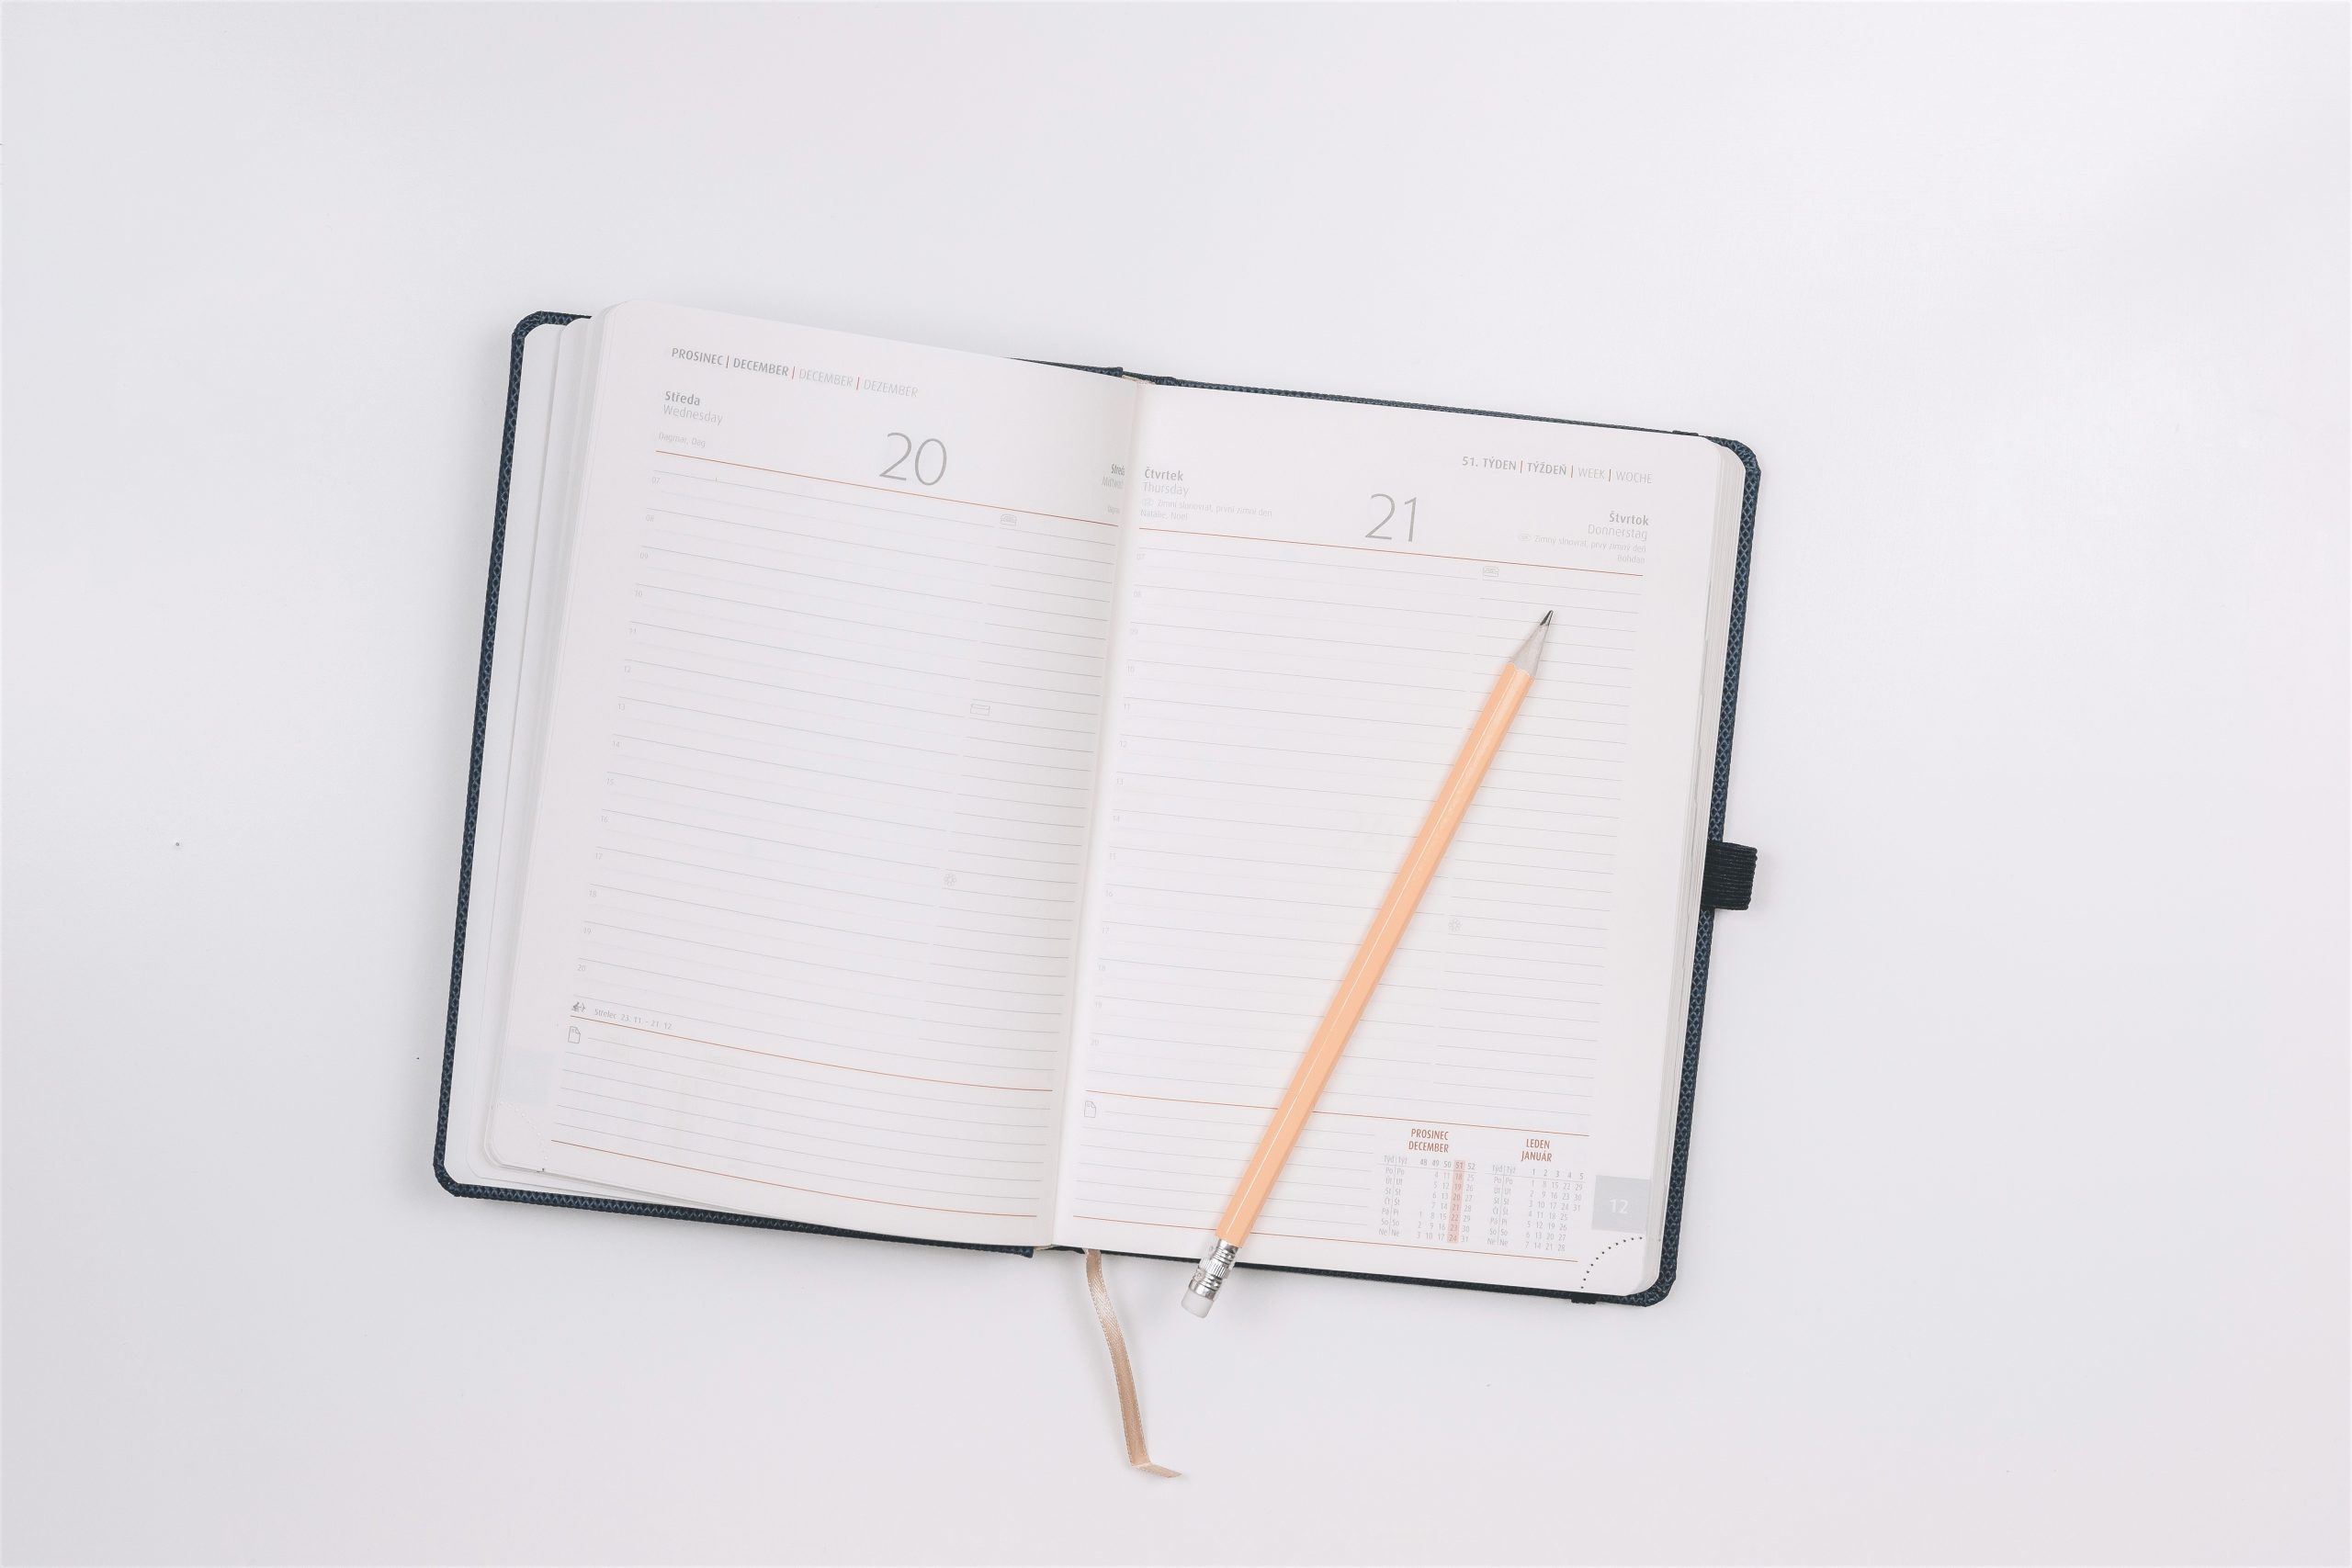 keep a 7-10 day log of all food and drink, eliminations, symptoms and activities